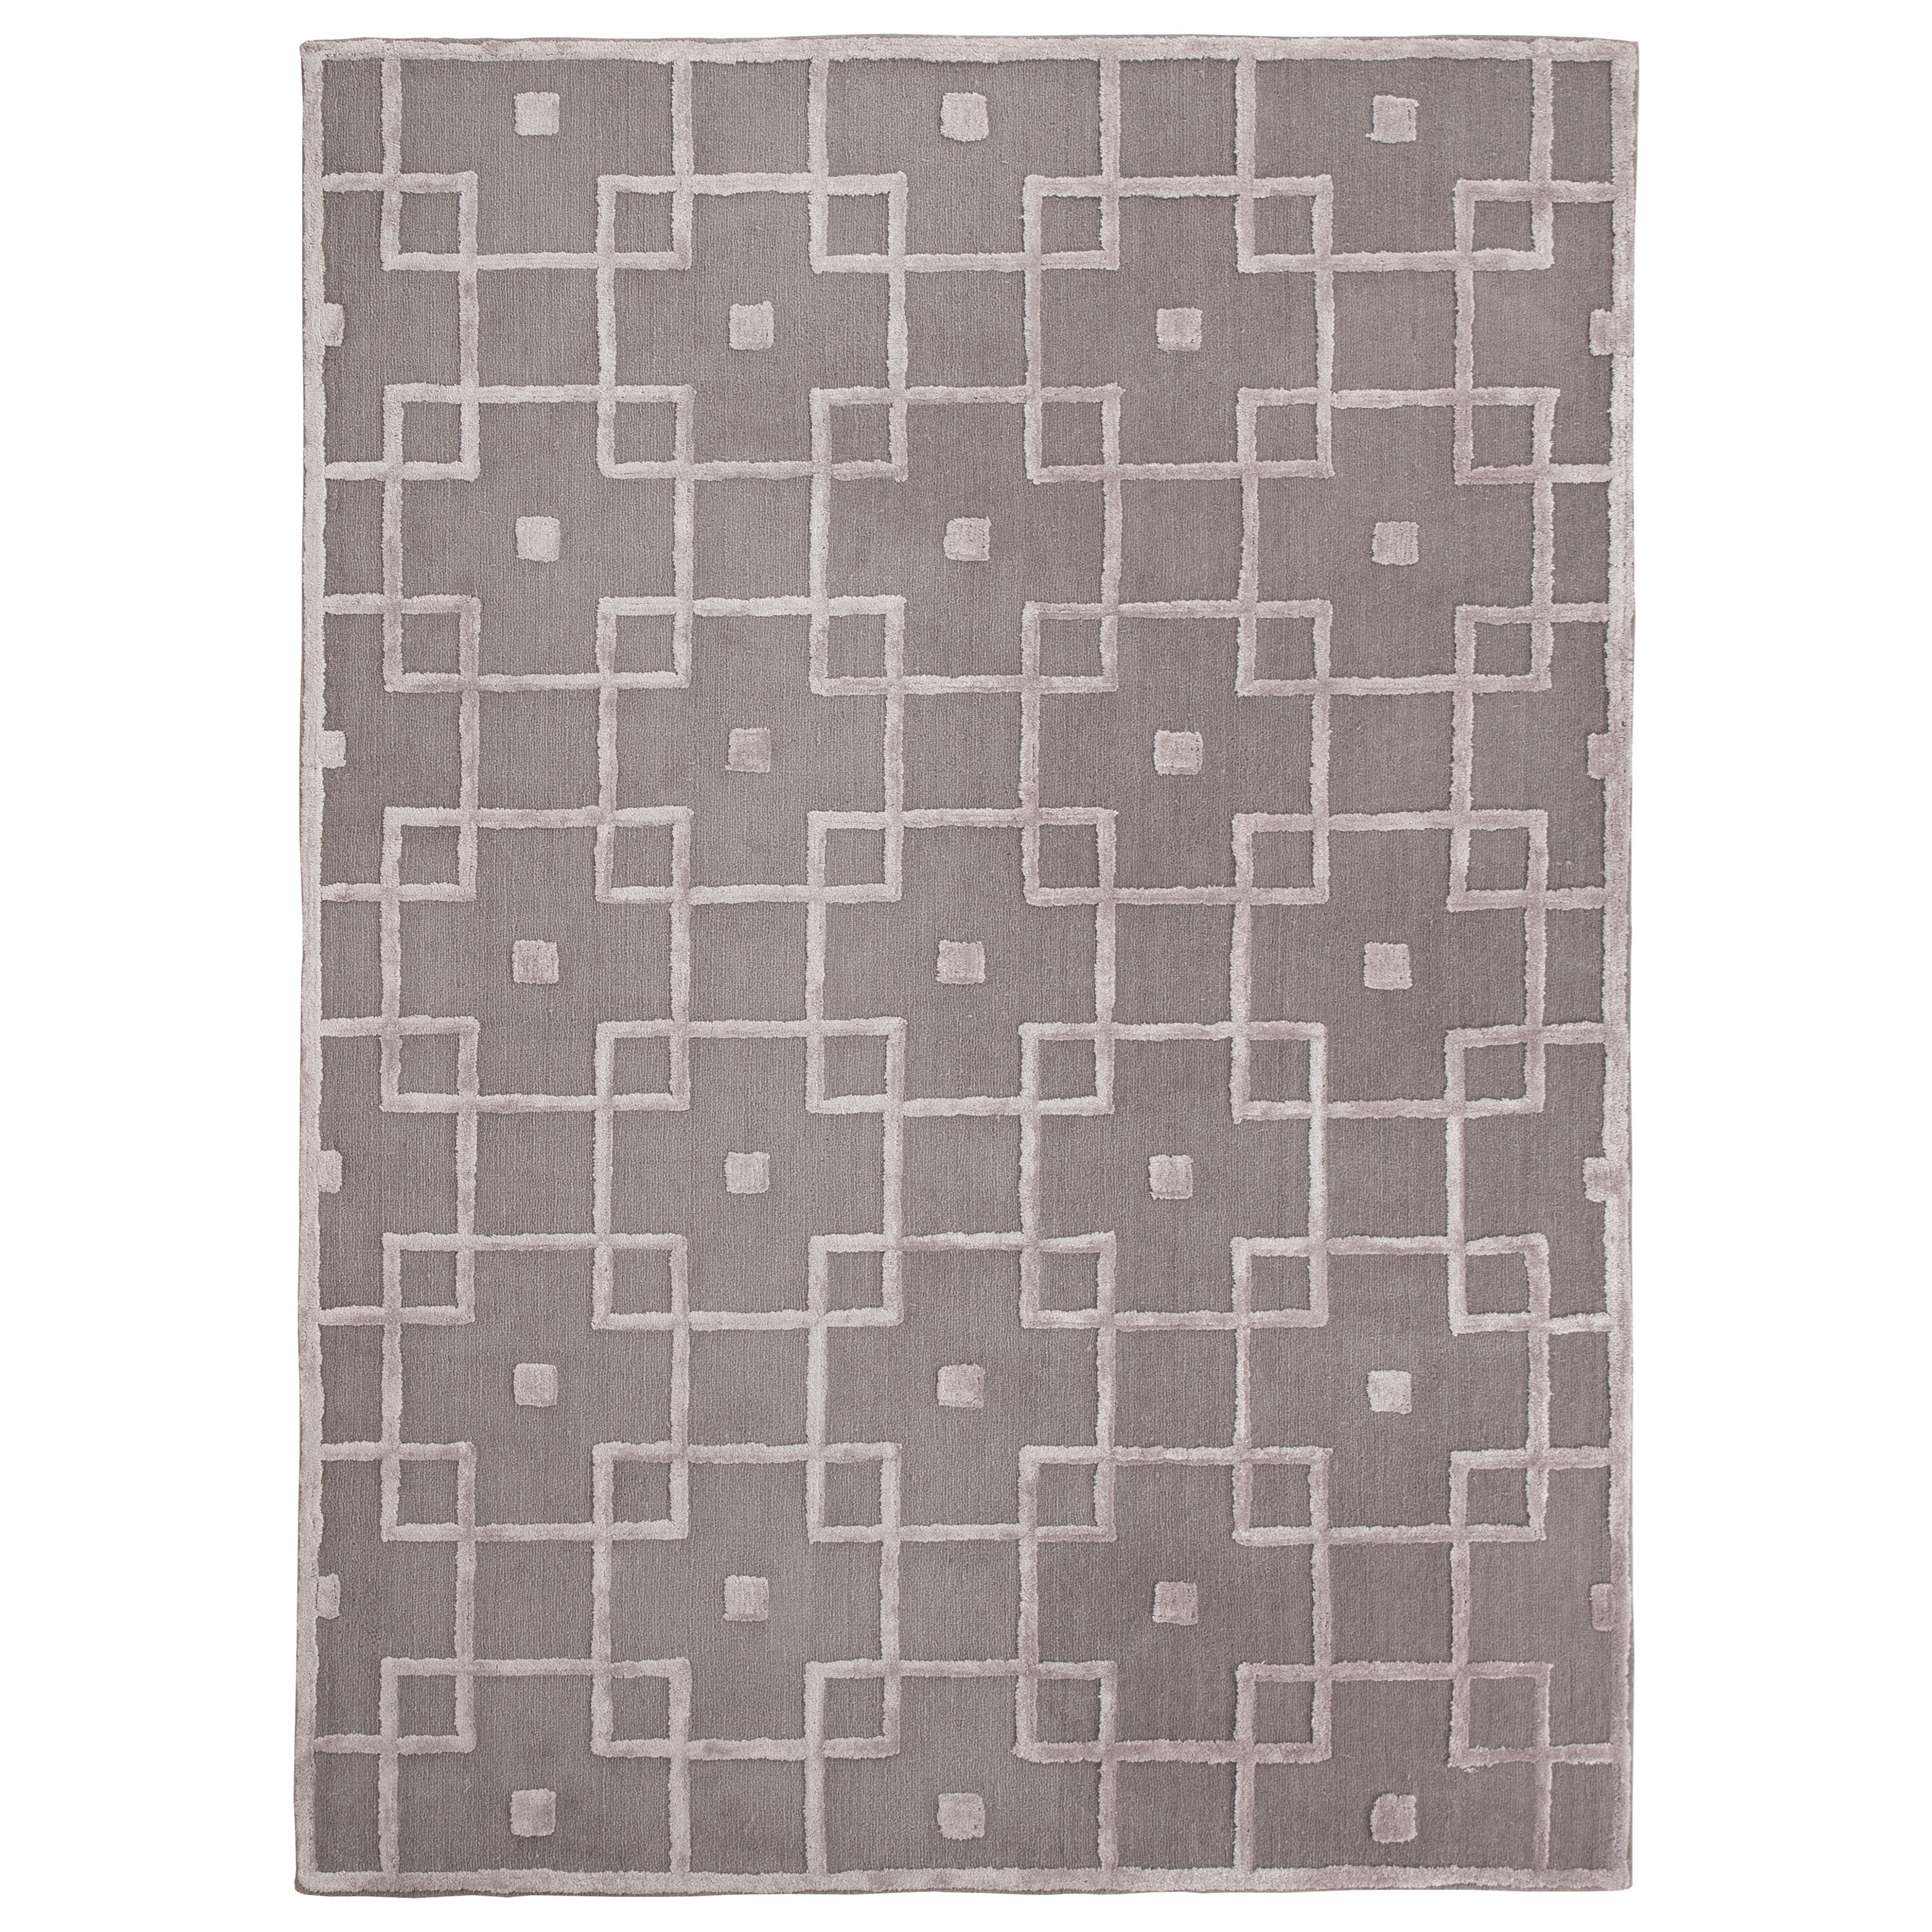 Signature Design by Ashley Contemporary Area Rugs Tyrell Gray Medium Rug - Item Number: R401432